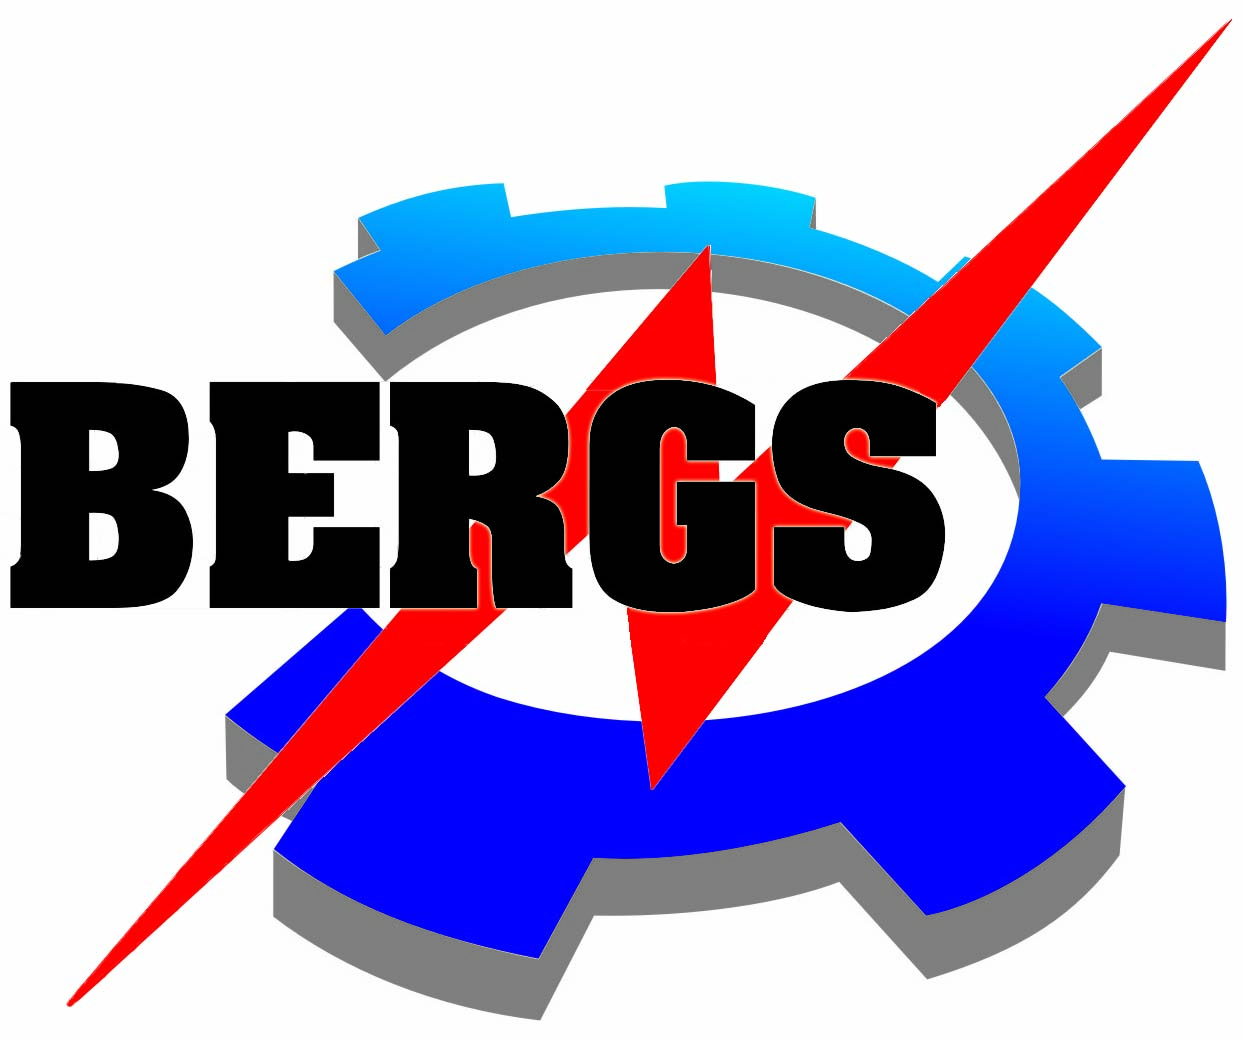 BERGS Energy Solutions and Technology Corporation